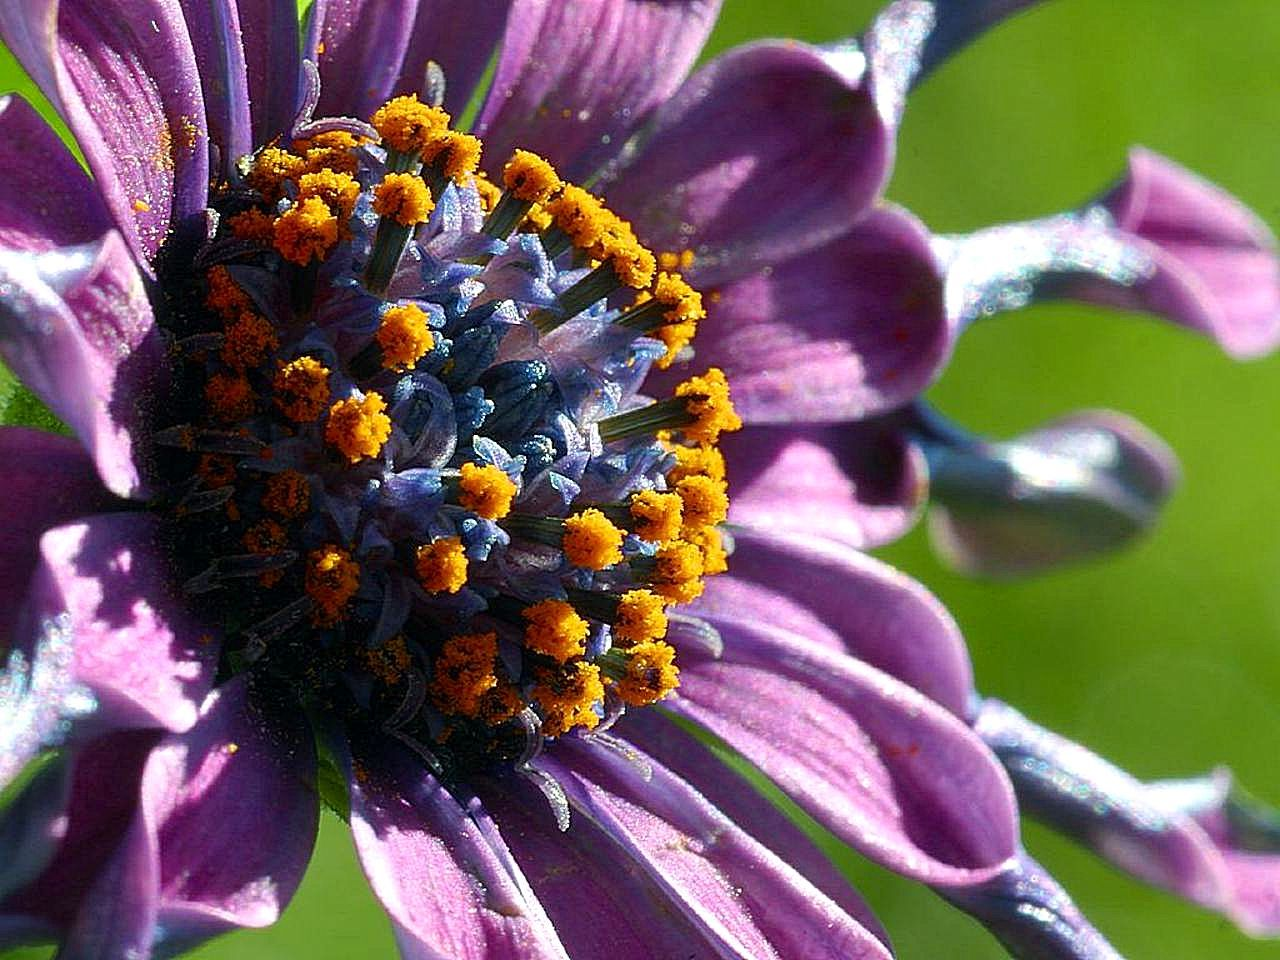 Purple flower excreting pollen, one common outdoor irritant for both asthma and COPD patients.